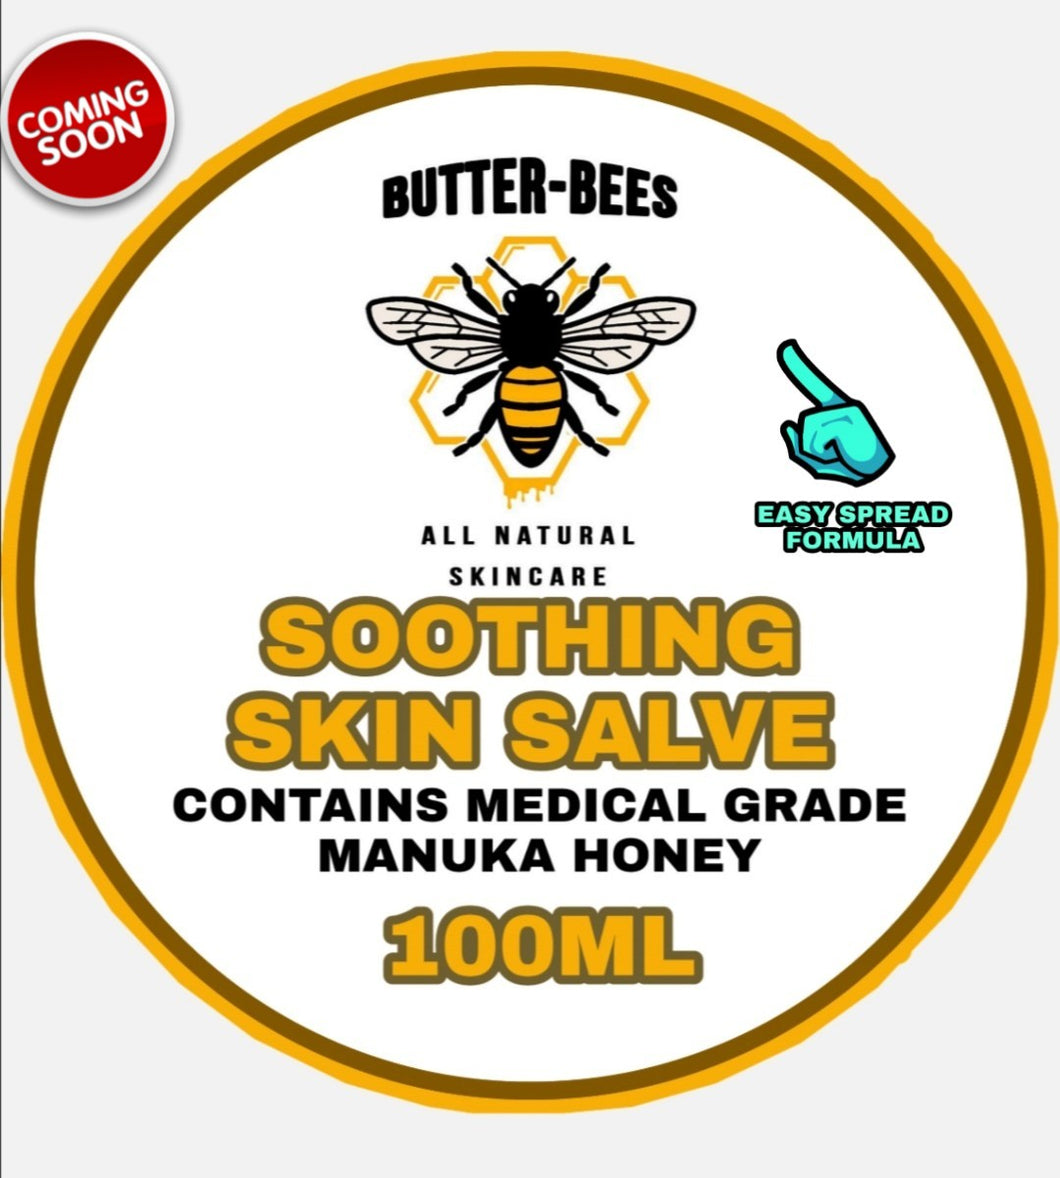 BUTTER BEES 'EASY SPREAD' SOOTHING SKIN SALVE 100ML